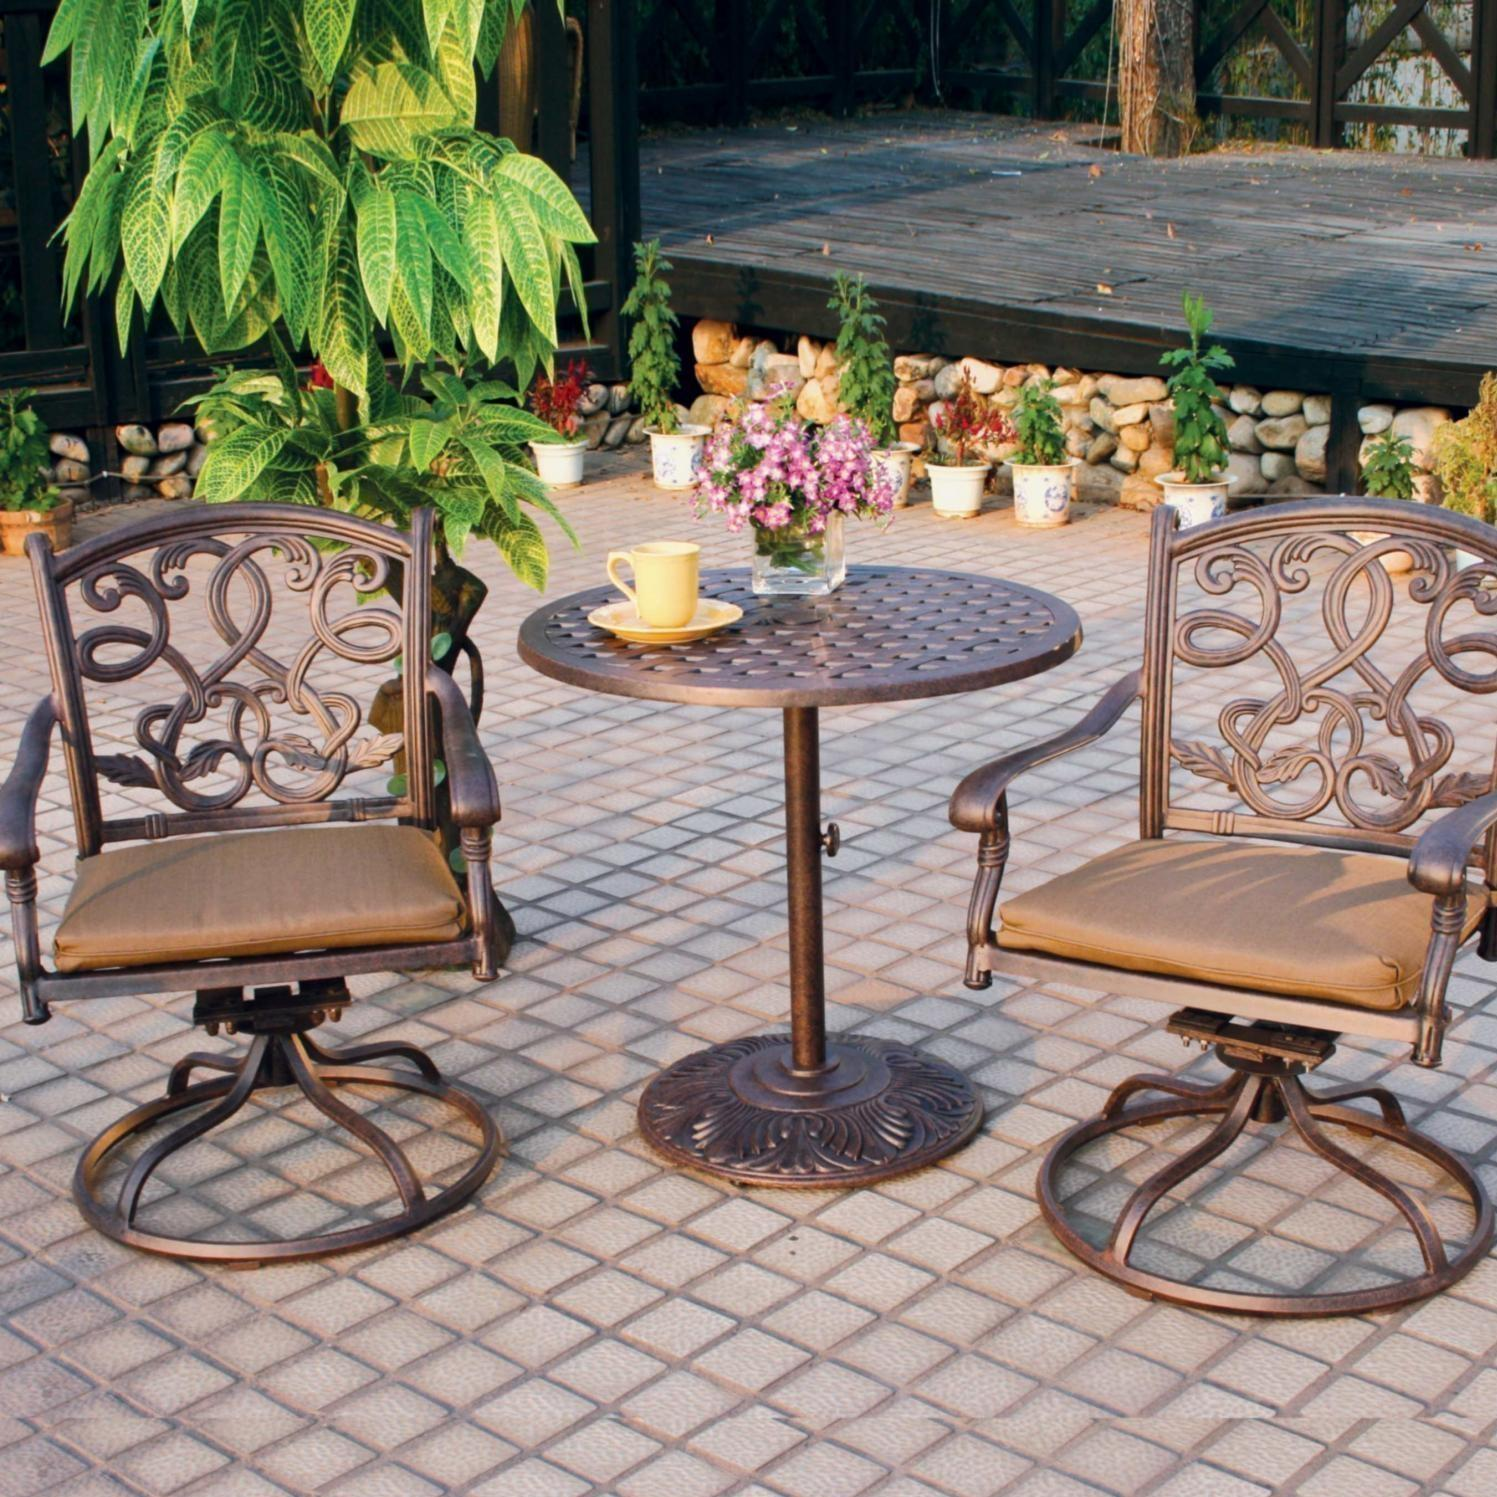 Darlee Santa Monica 3 Piece Patio Bistro Set